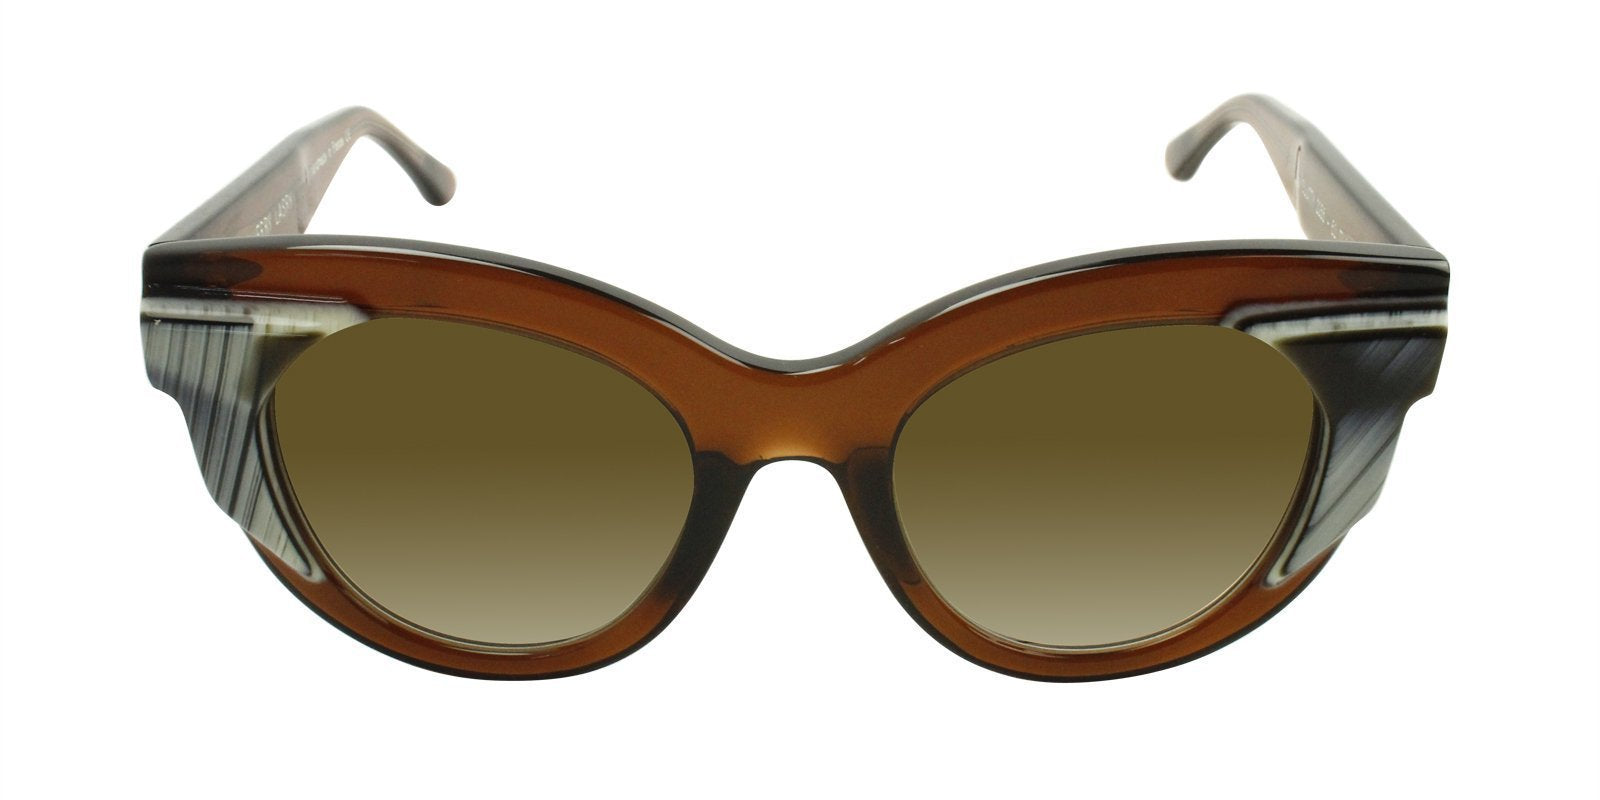 Thierry Lasry - Slutty Brown Oval Women Sunglasses - 52mm-Sunglasses-Designer Eyes